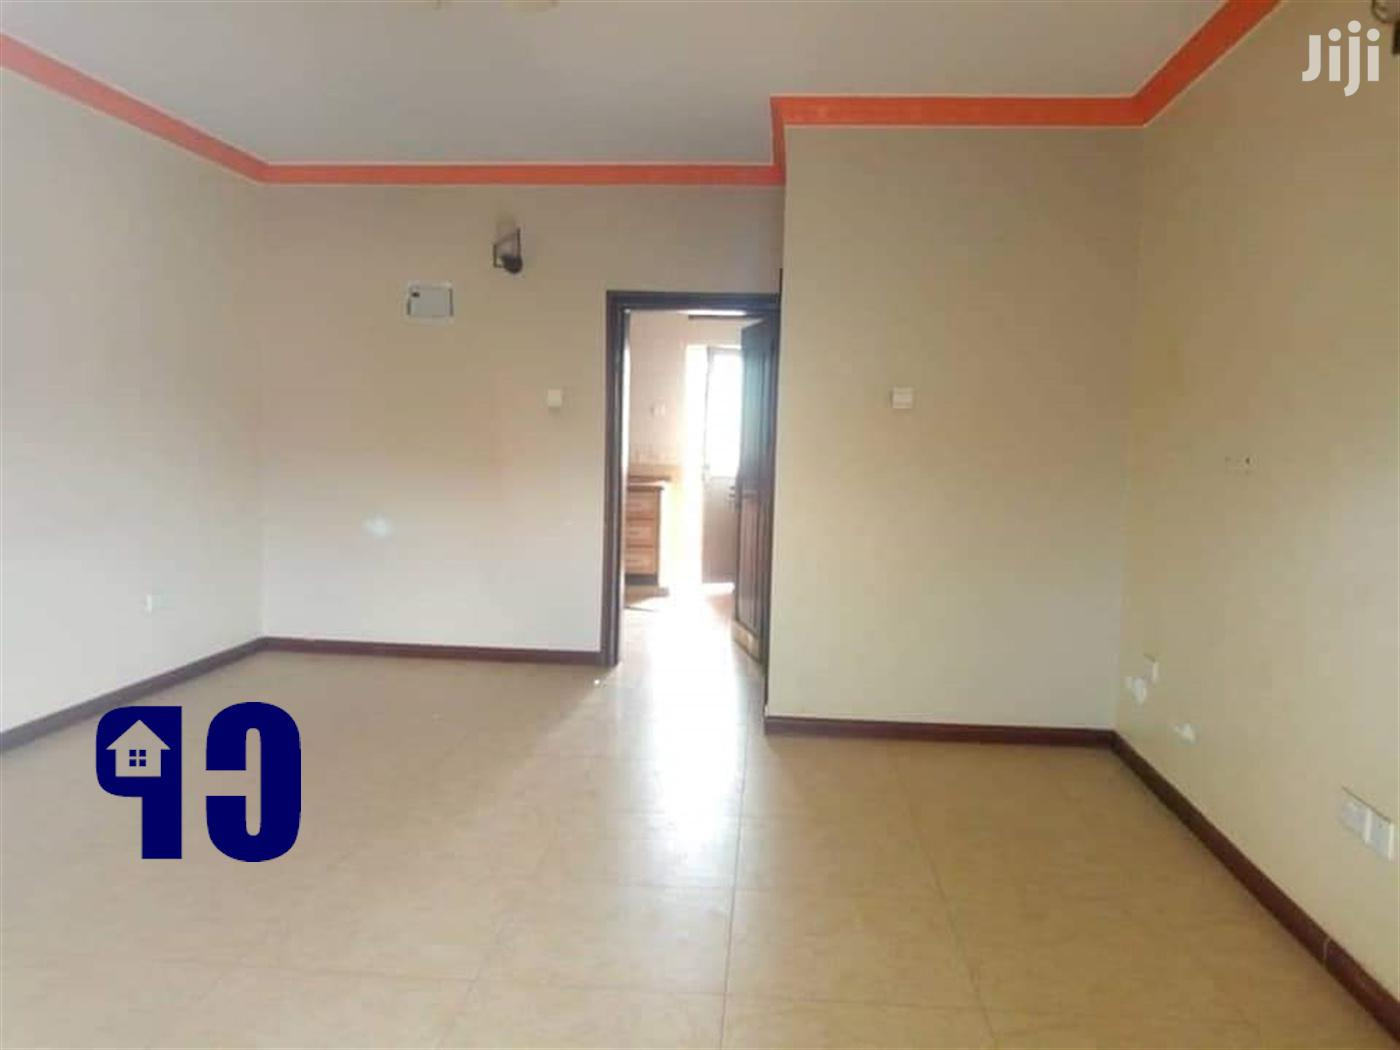 Kyebando Brand New Three Bedrooms Apartment For Rent